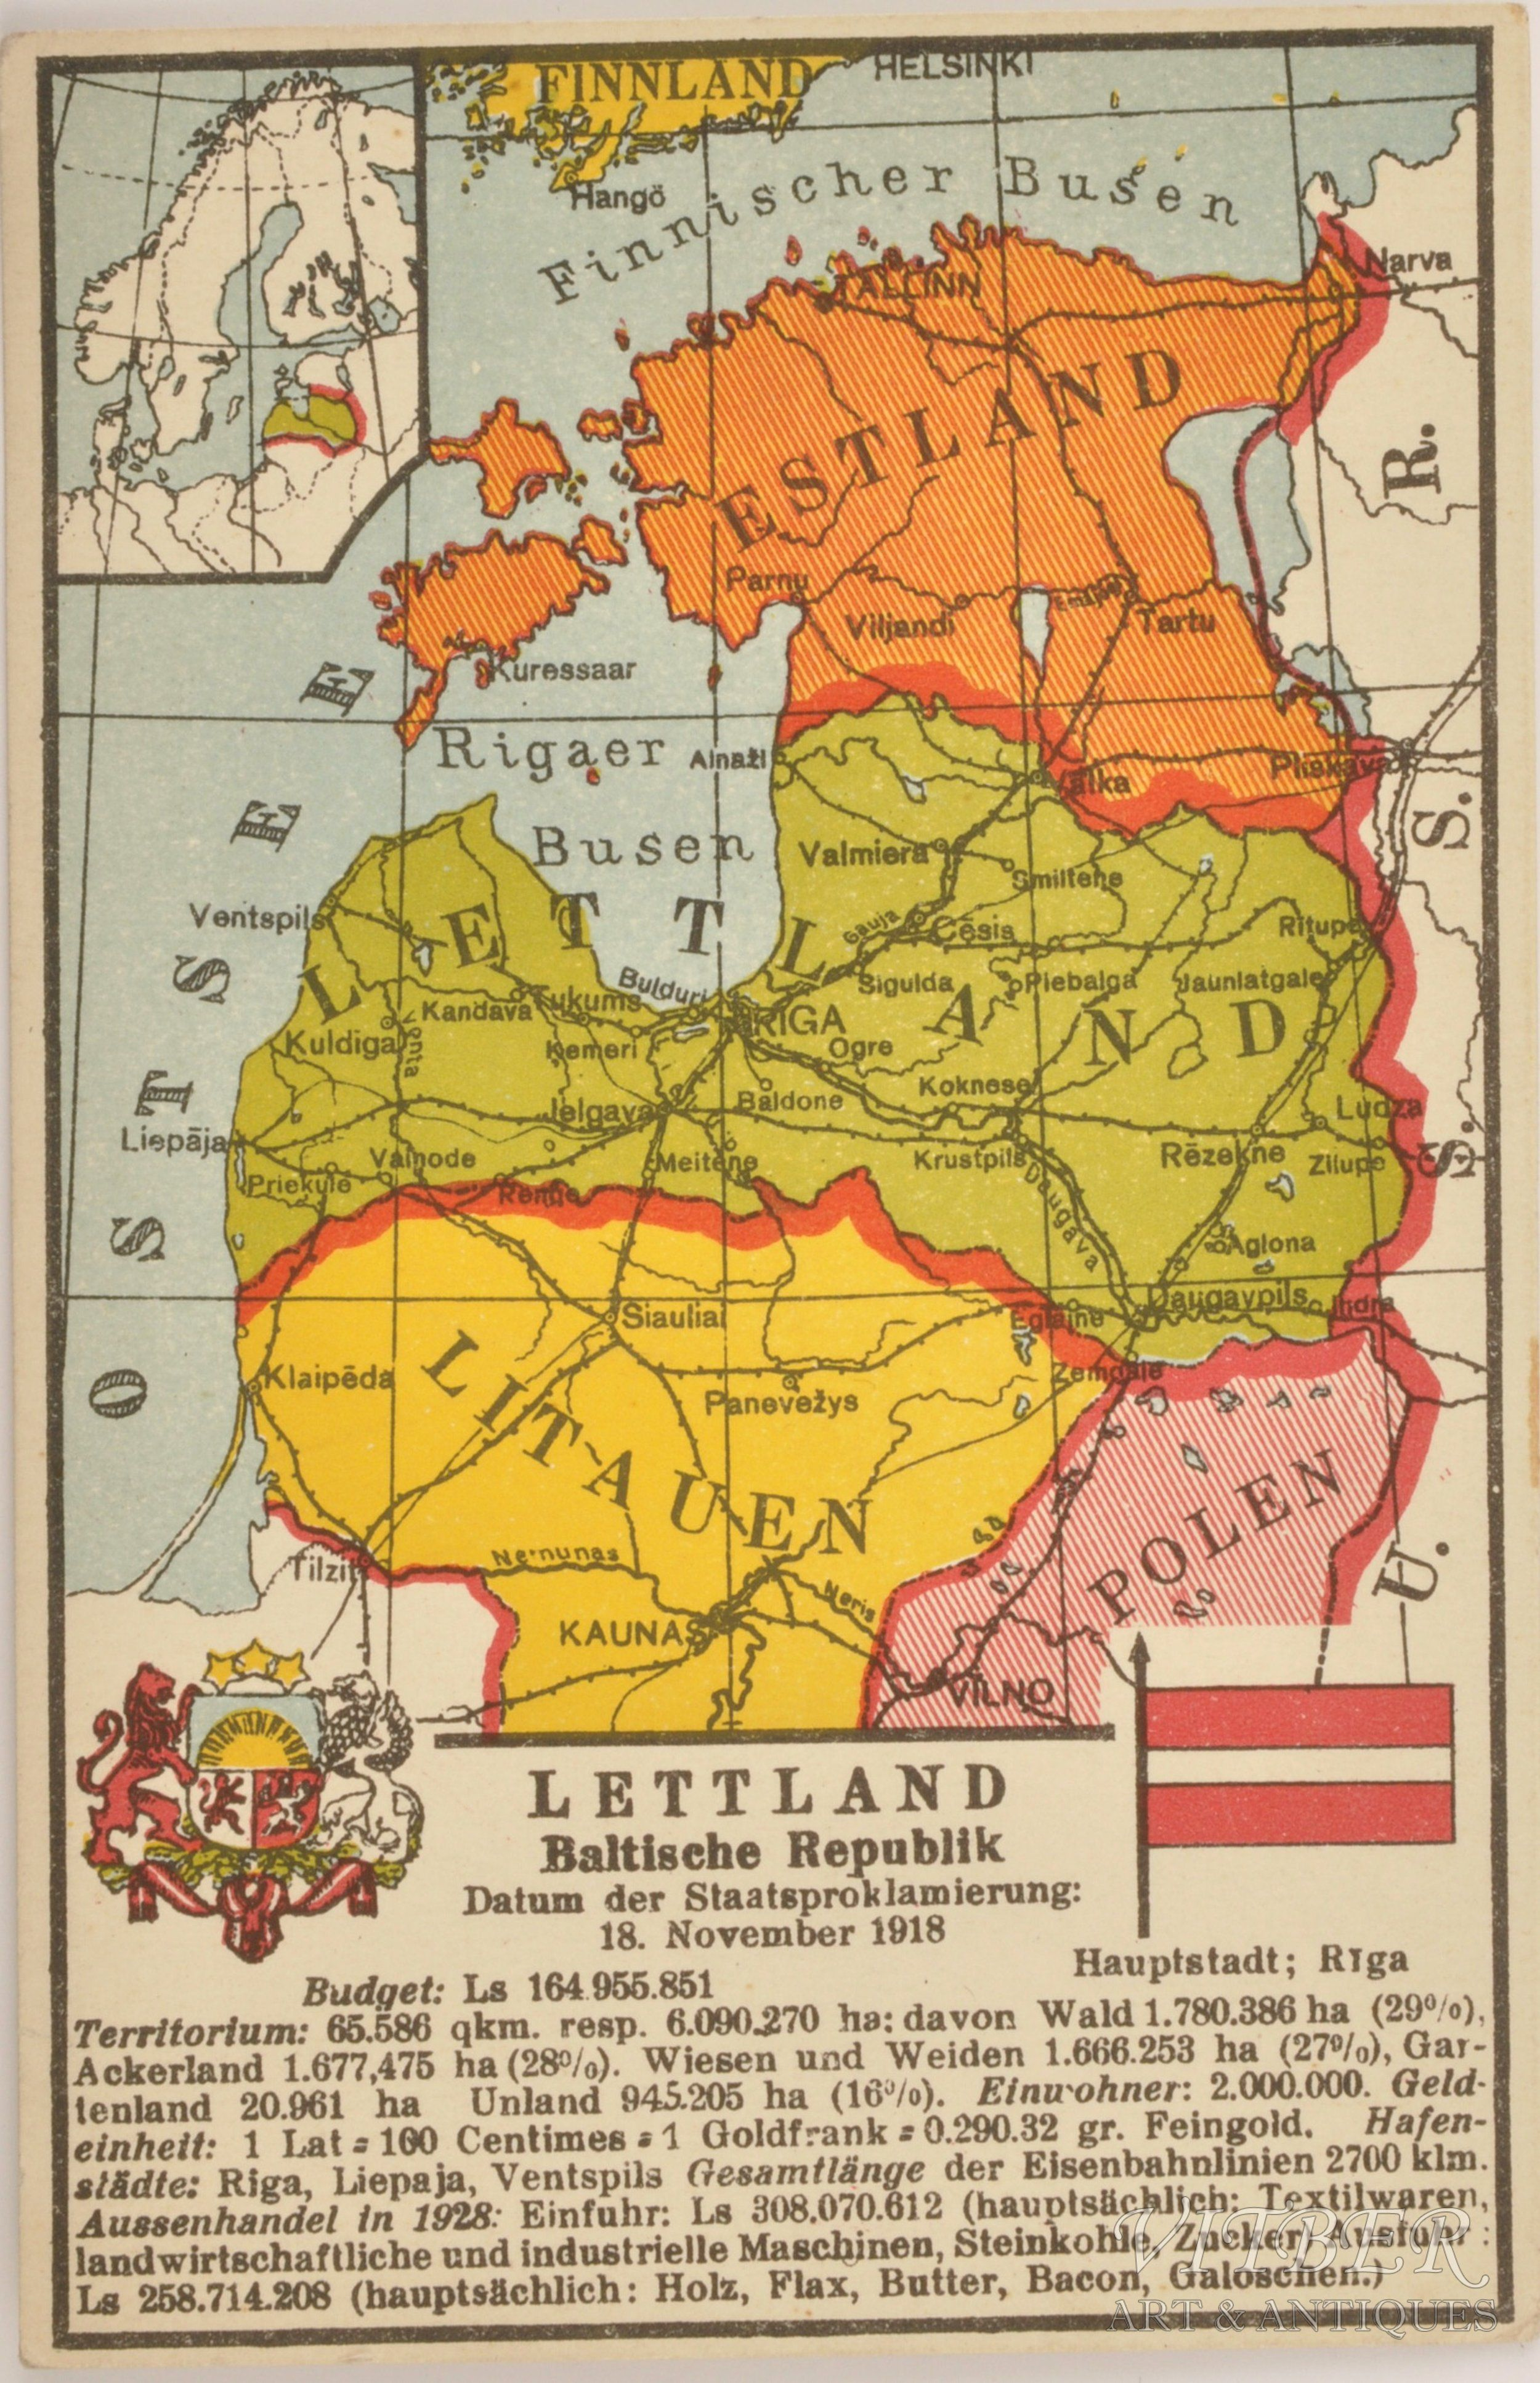 Pin By Andre Souza On Maps Historical Maps Baltic States Cartography